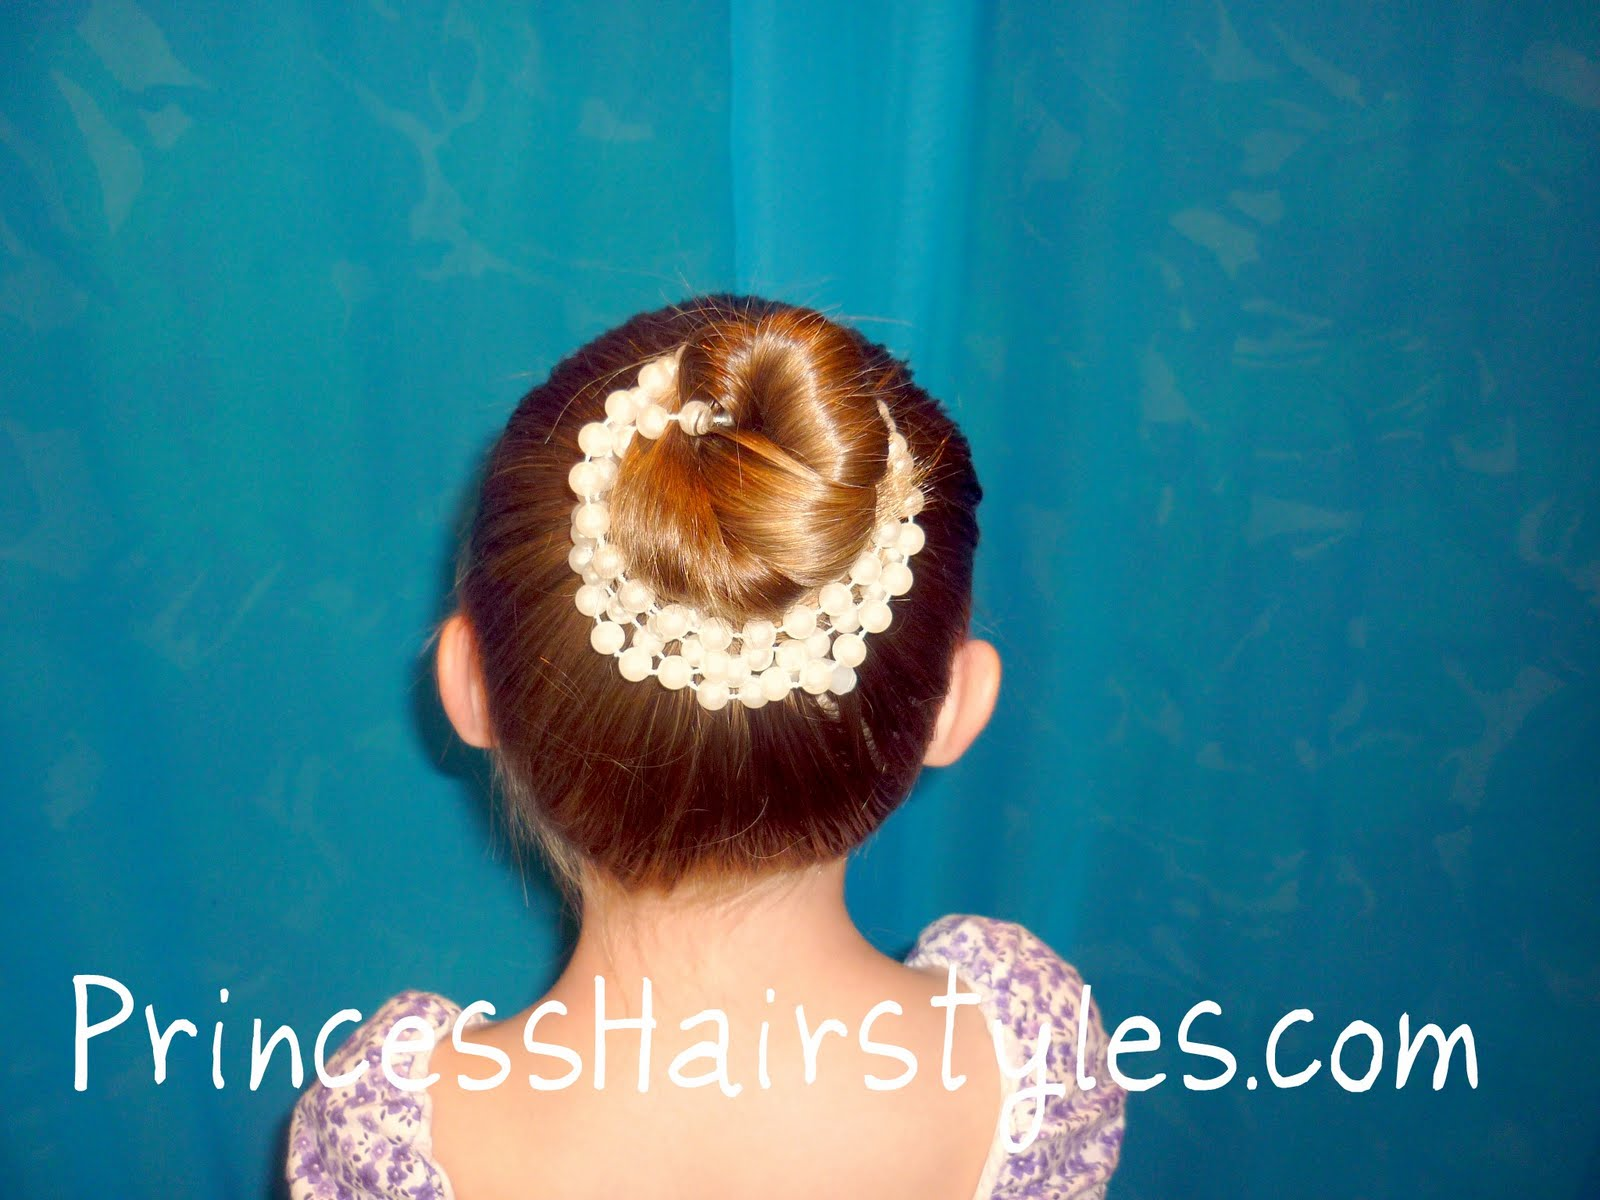 Sensational Hairstyles For Girls Princess Hairstyles Hairstyle Inspiration Daily Dogsangcom